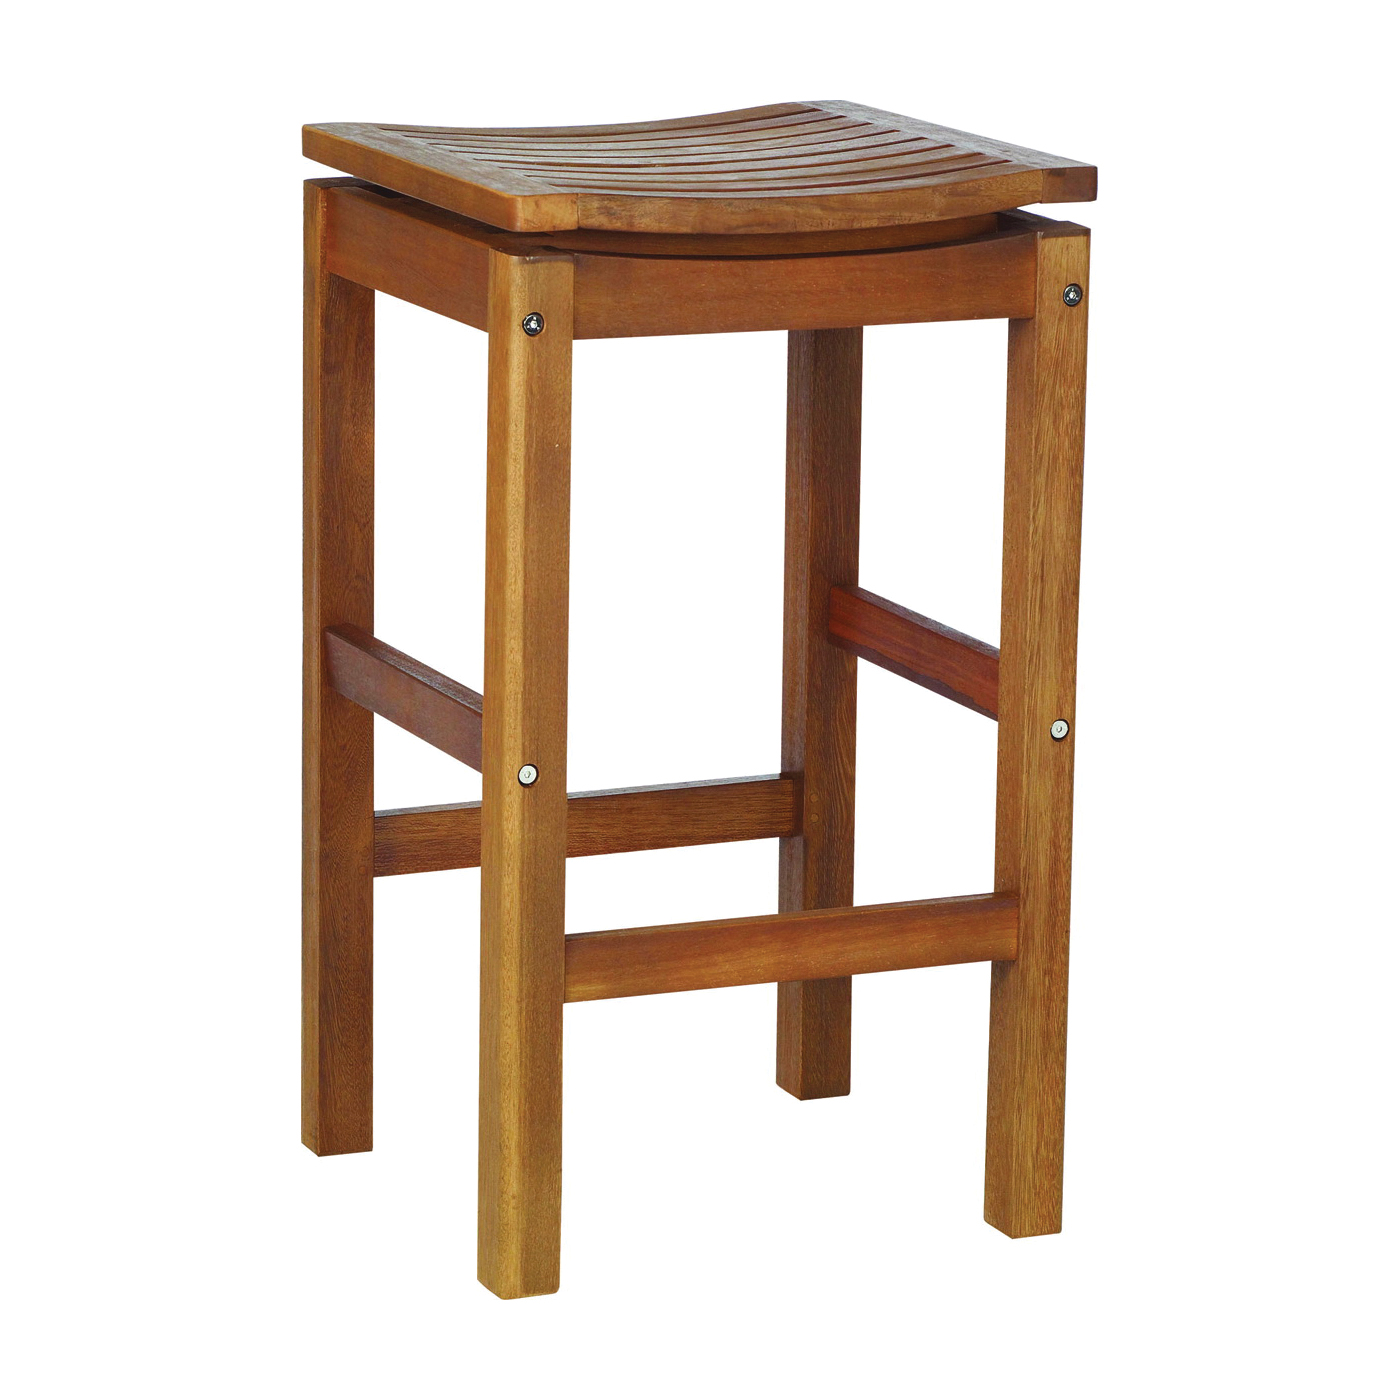 Picture of BULL 50650 Bar Stool, Teakwood Seat, Teakwood Frame